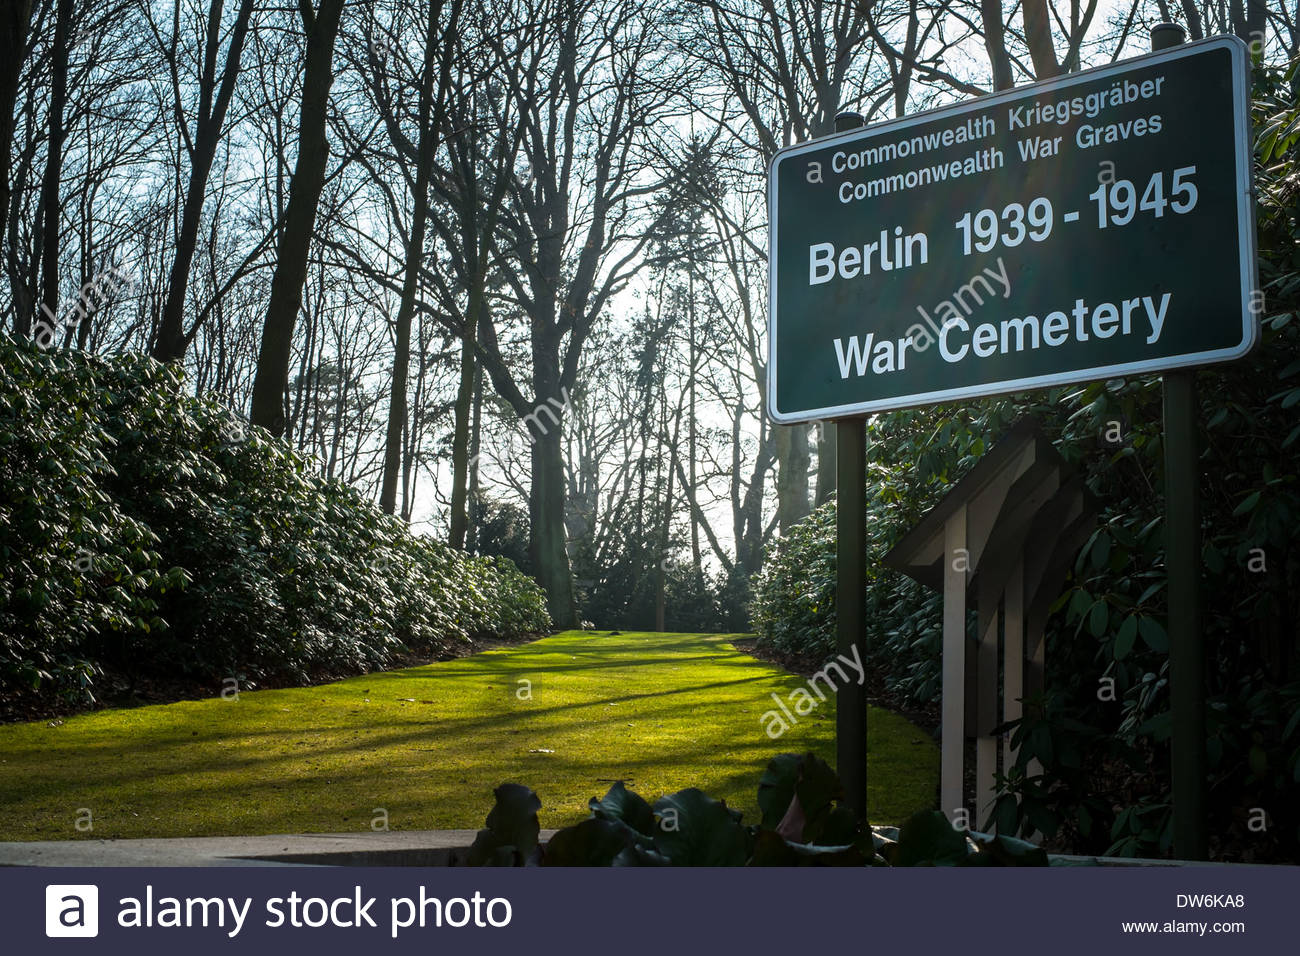 Berlin, Germany 1939 -1945 Commonwealth War Graves Commission Cemetery - Royal Air Force soldier - Stock Image